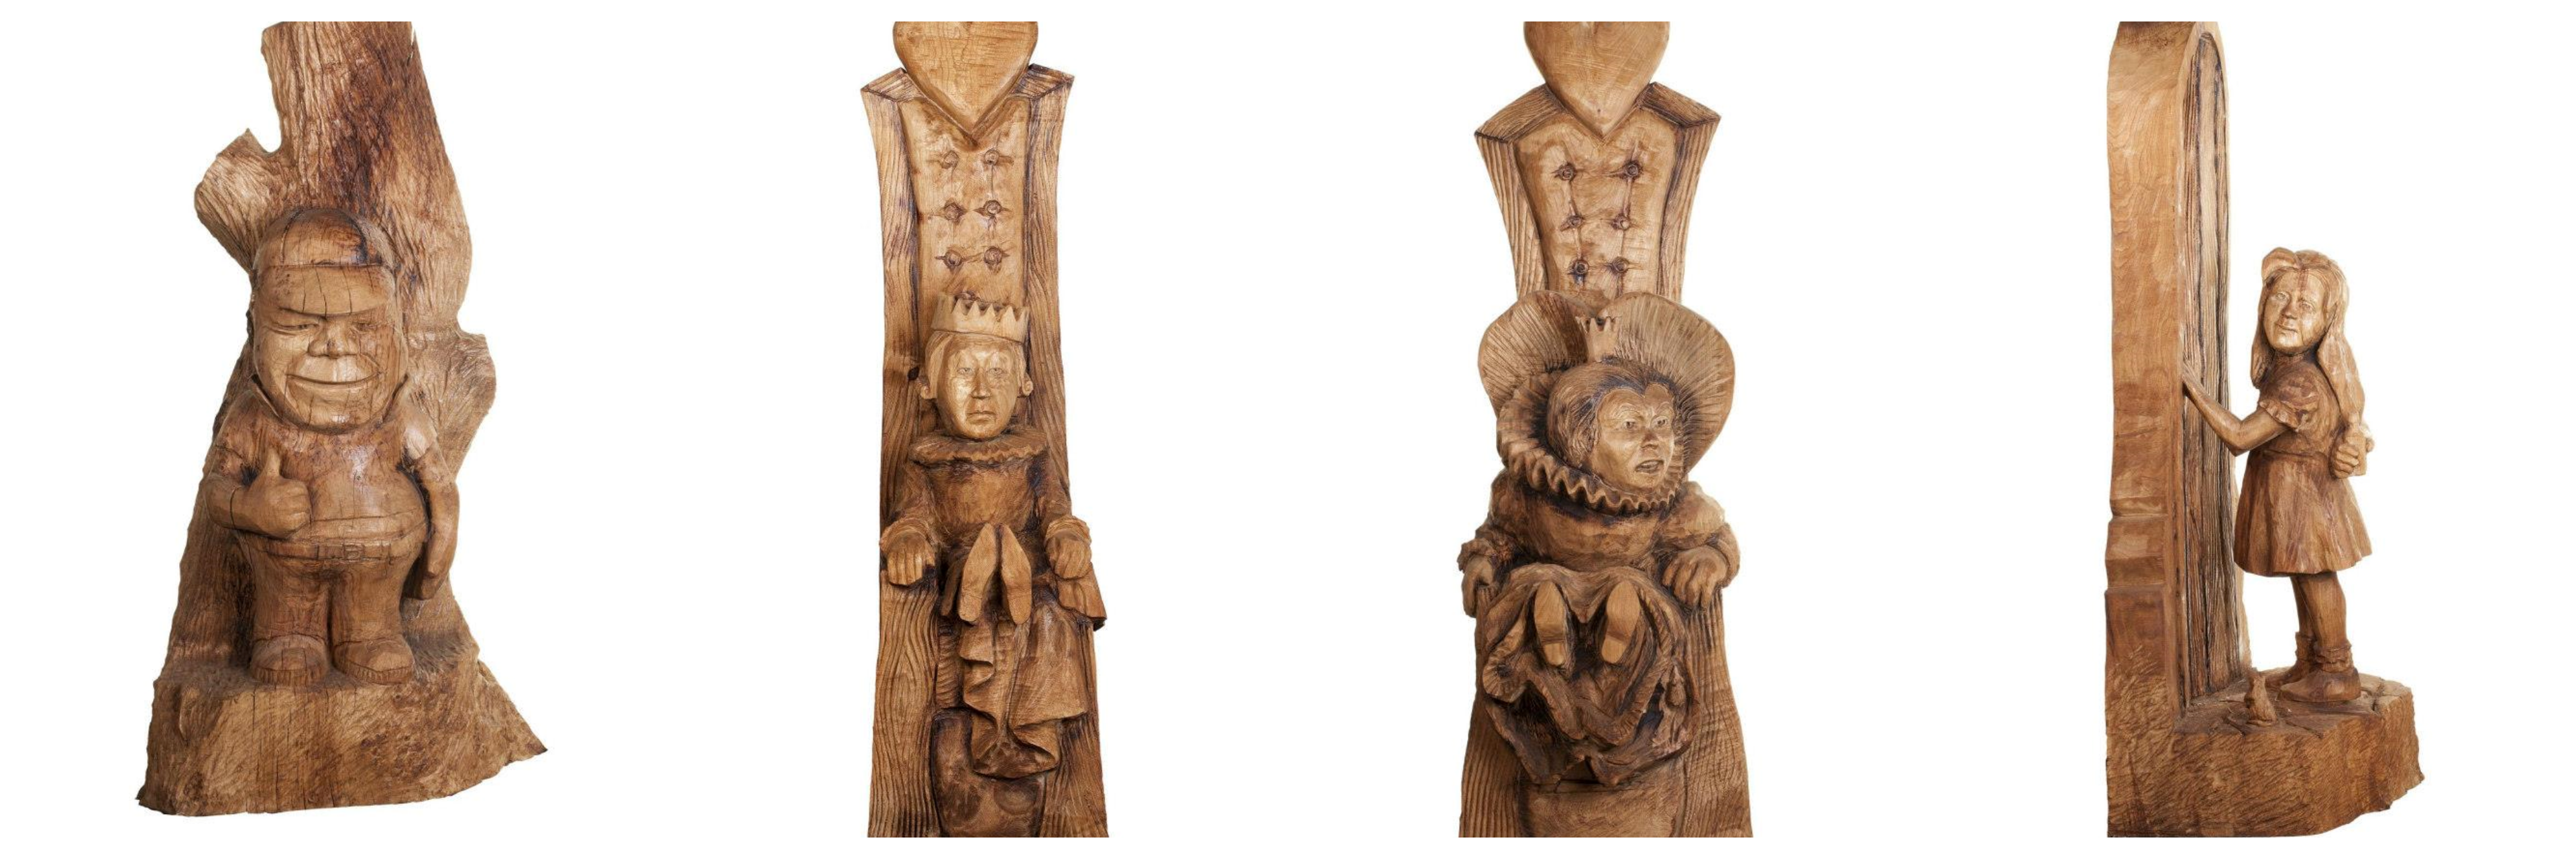 Alice in Wonderland sculpture by chainsaw artist simon o'rourke. Figures carved in wood of around 6' show the quuen of hearts, king of hearts, alice and tweedle dum